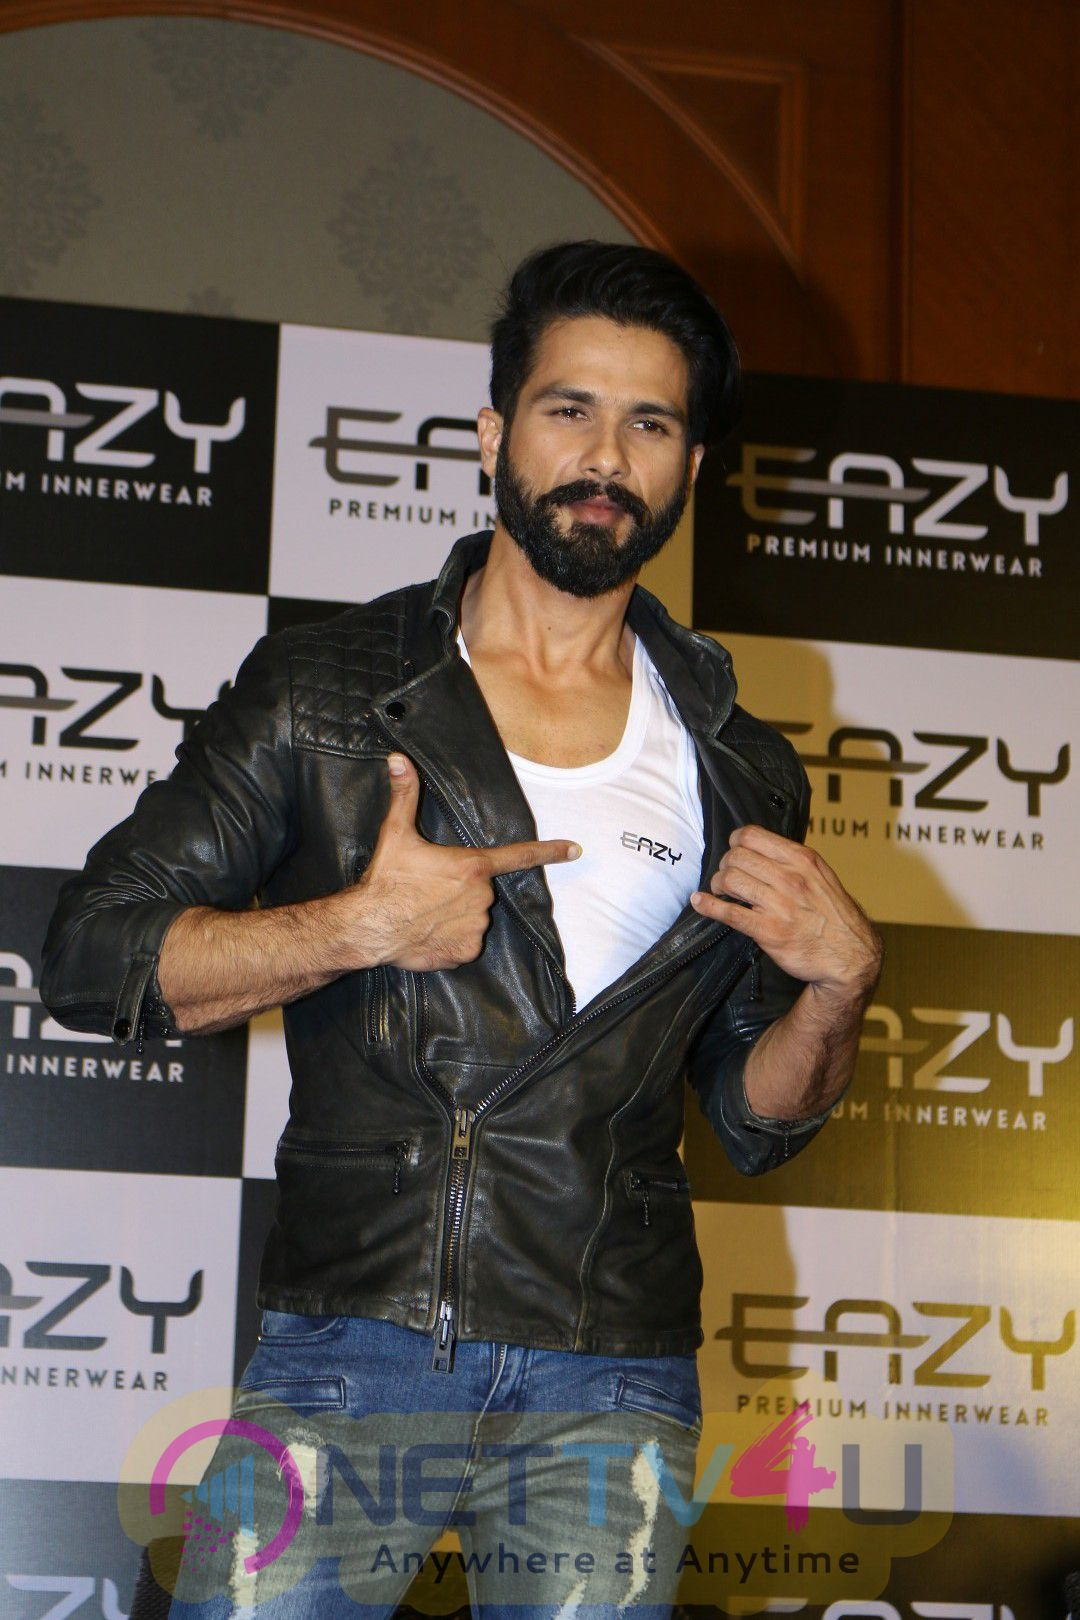 Shahid Kapoor Launches Eazy Premium Innerwear Brand Images